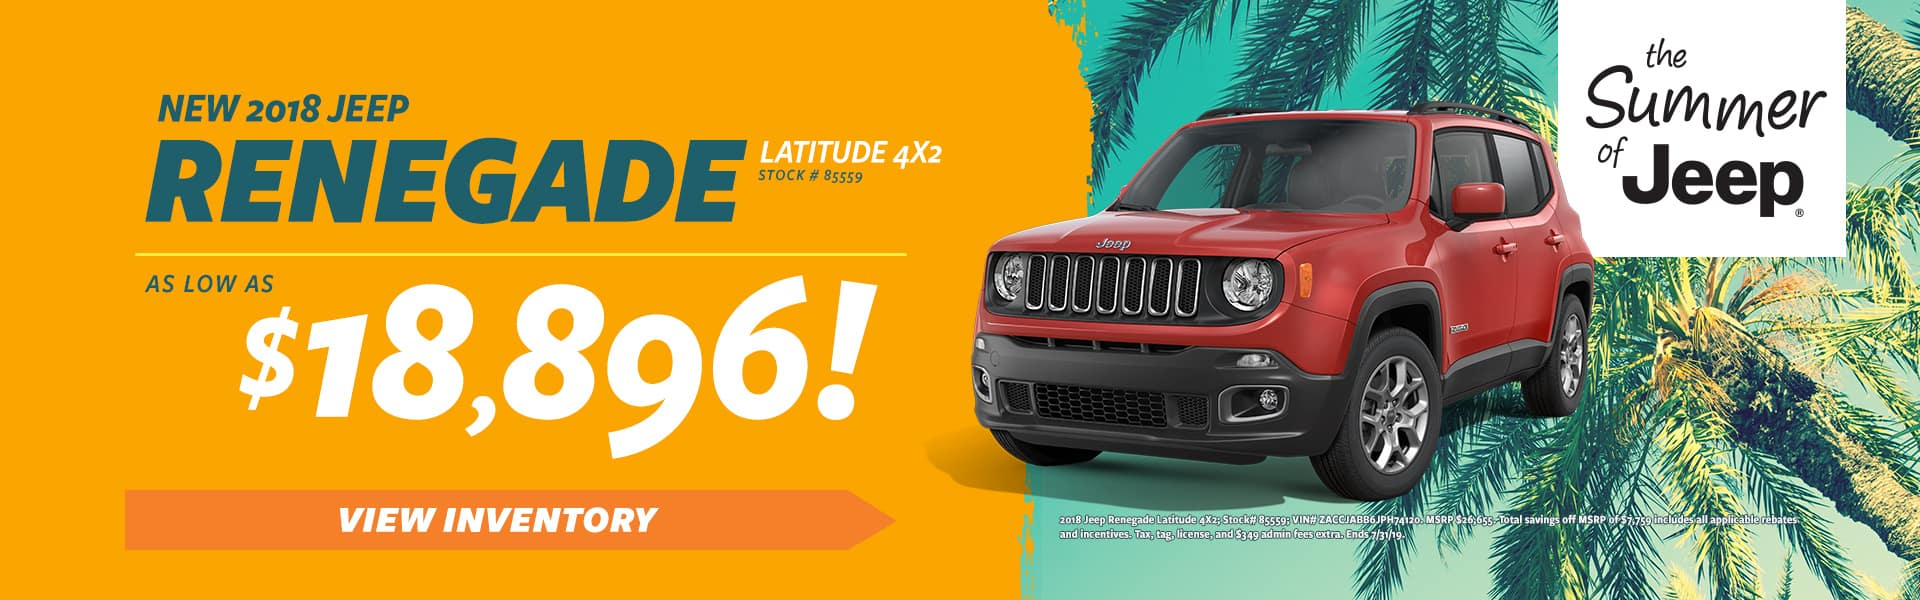 New 2018 Jeep Renegade!